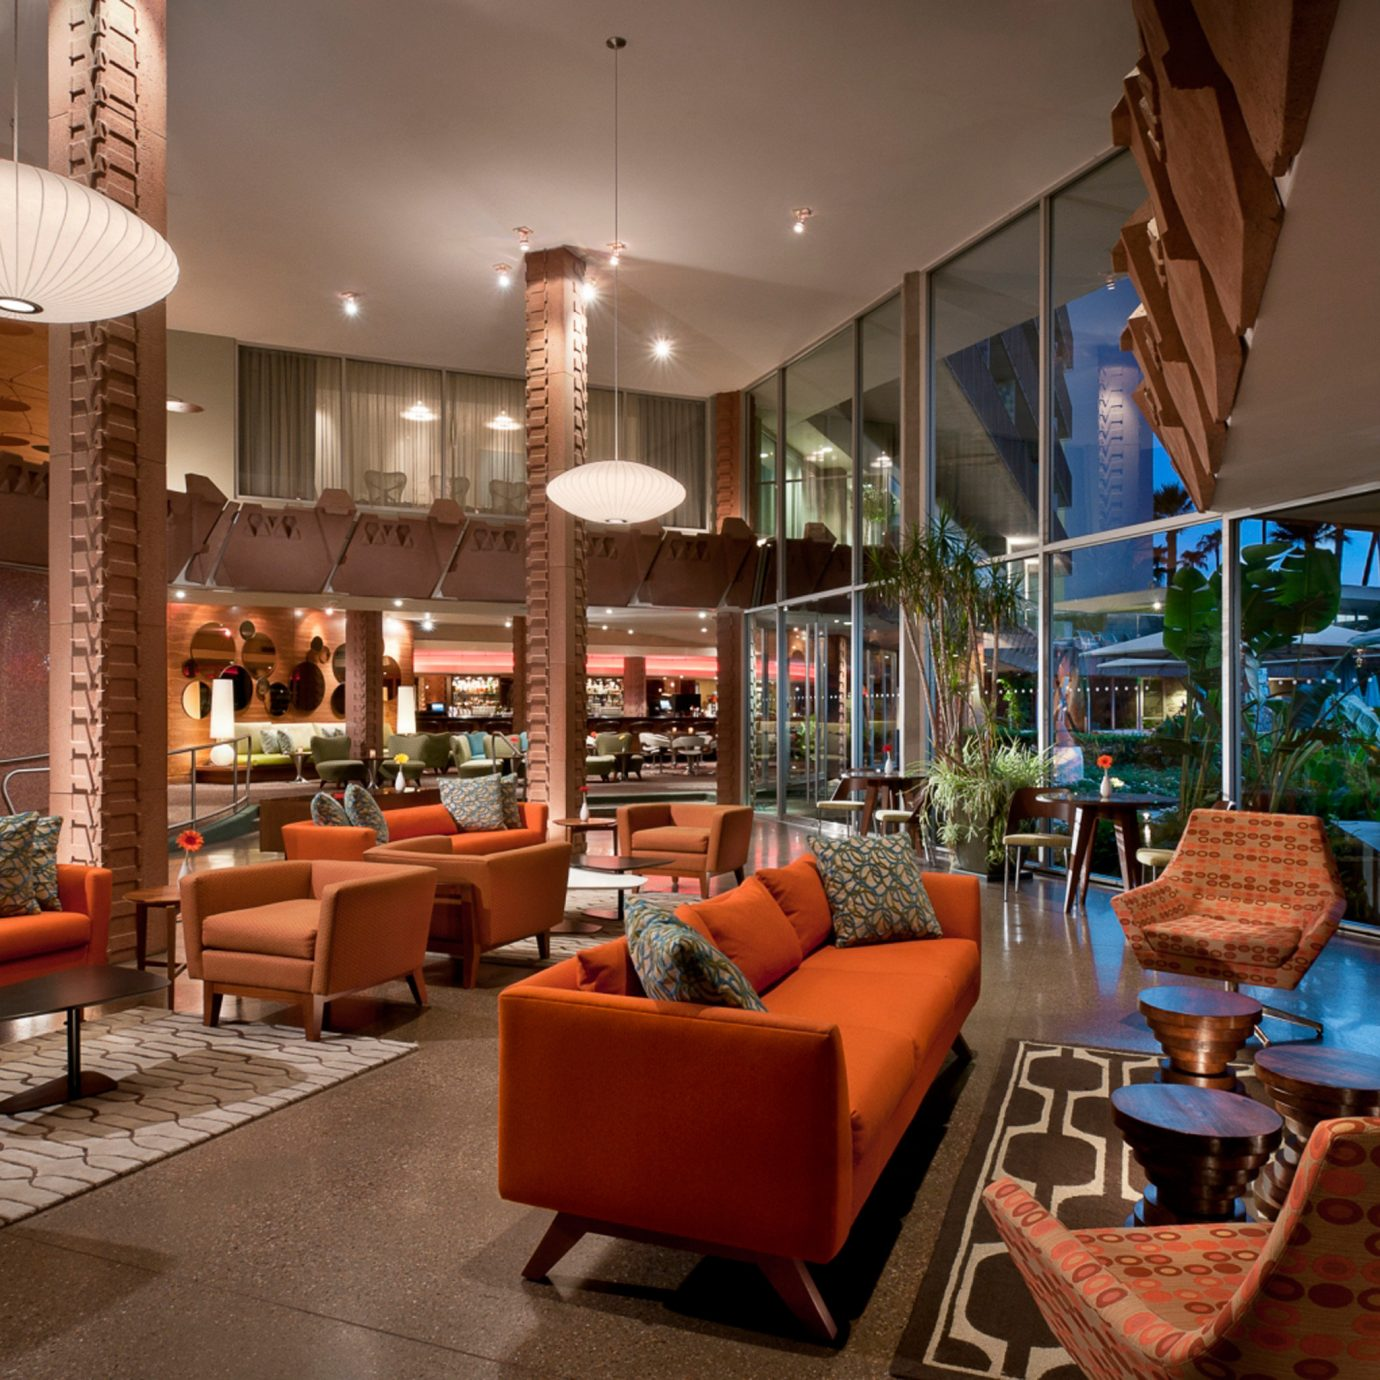 Lounge Luxury Scenic views chair Lobby home living room Resort restaurant Dining orange Bar